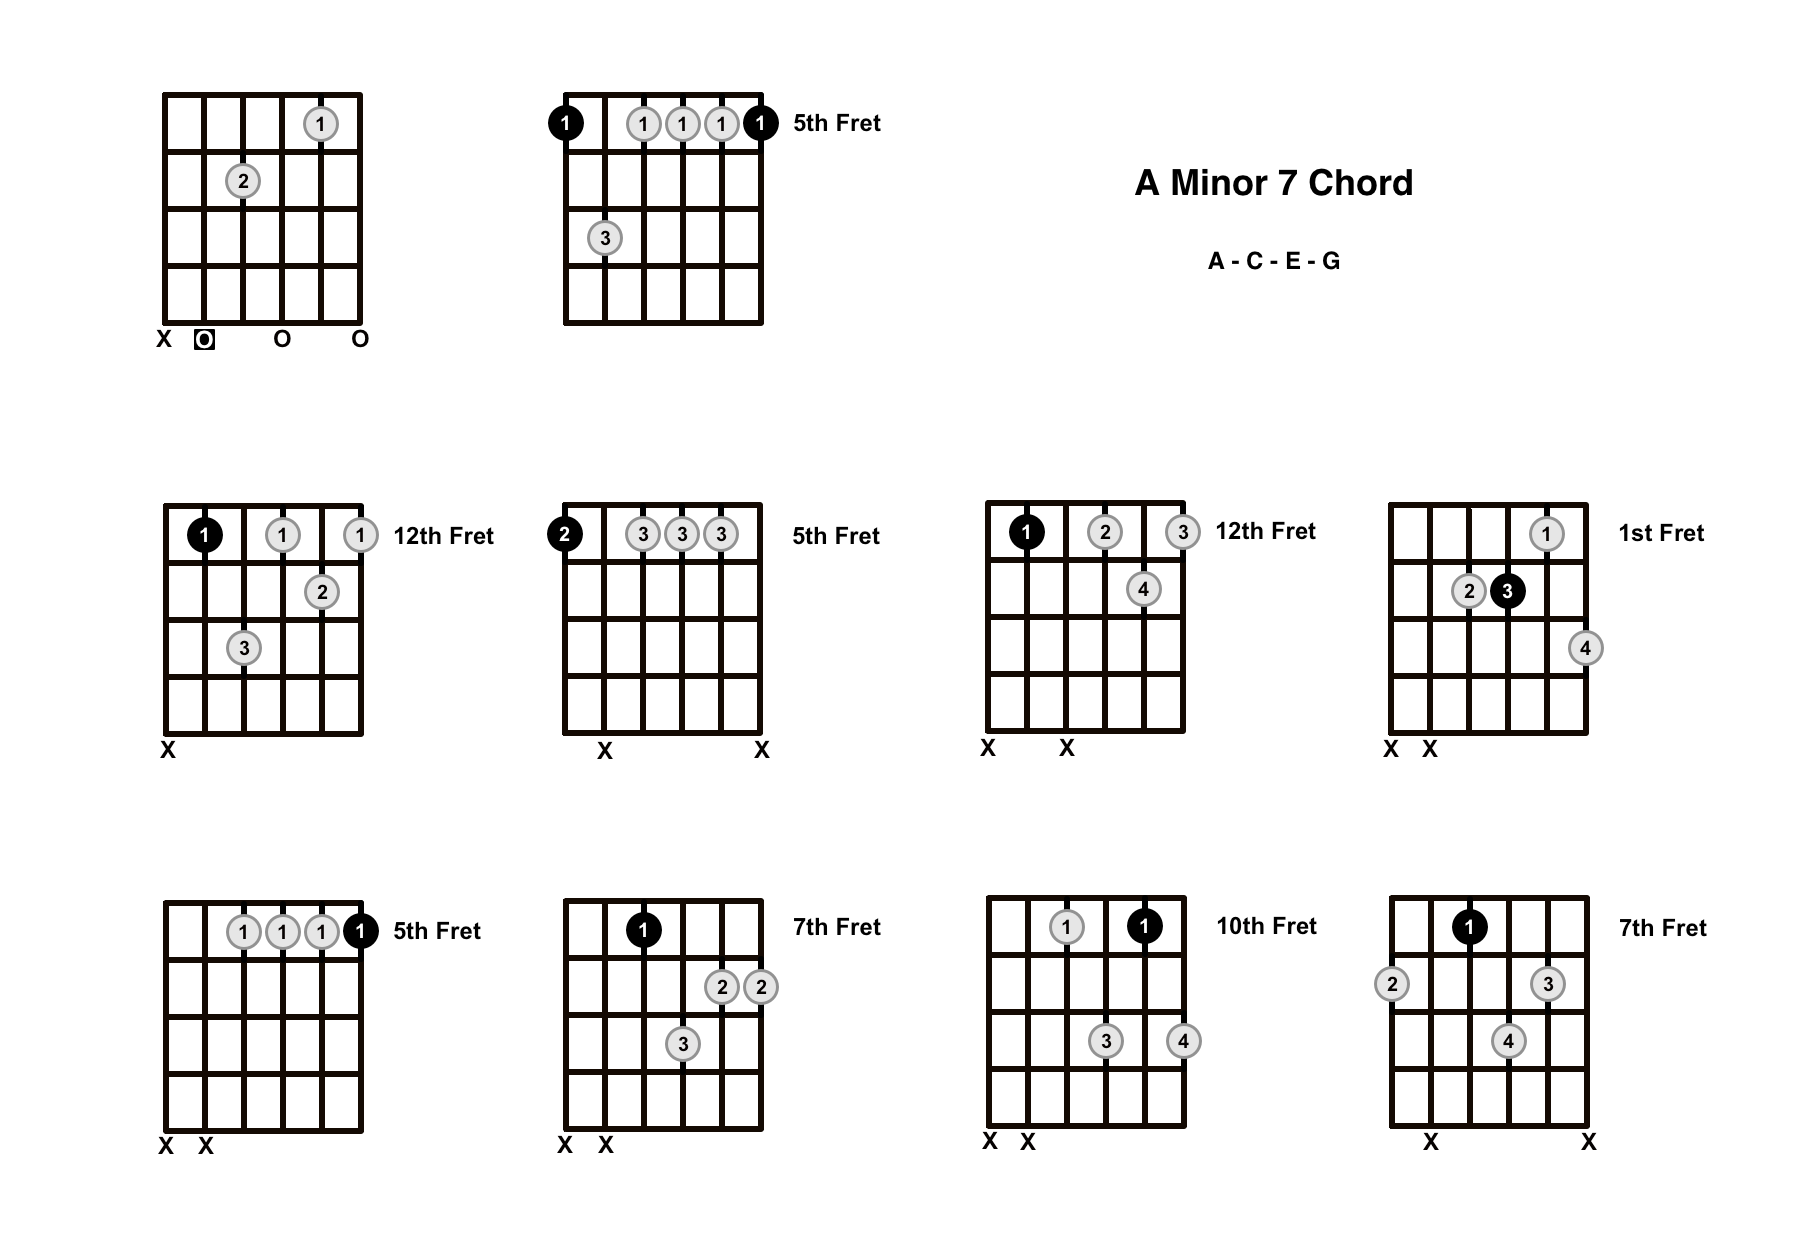 Am7 Chord on the Guitar (A Minor 7) – Diagrams, Finger Positions, Theory